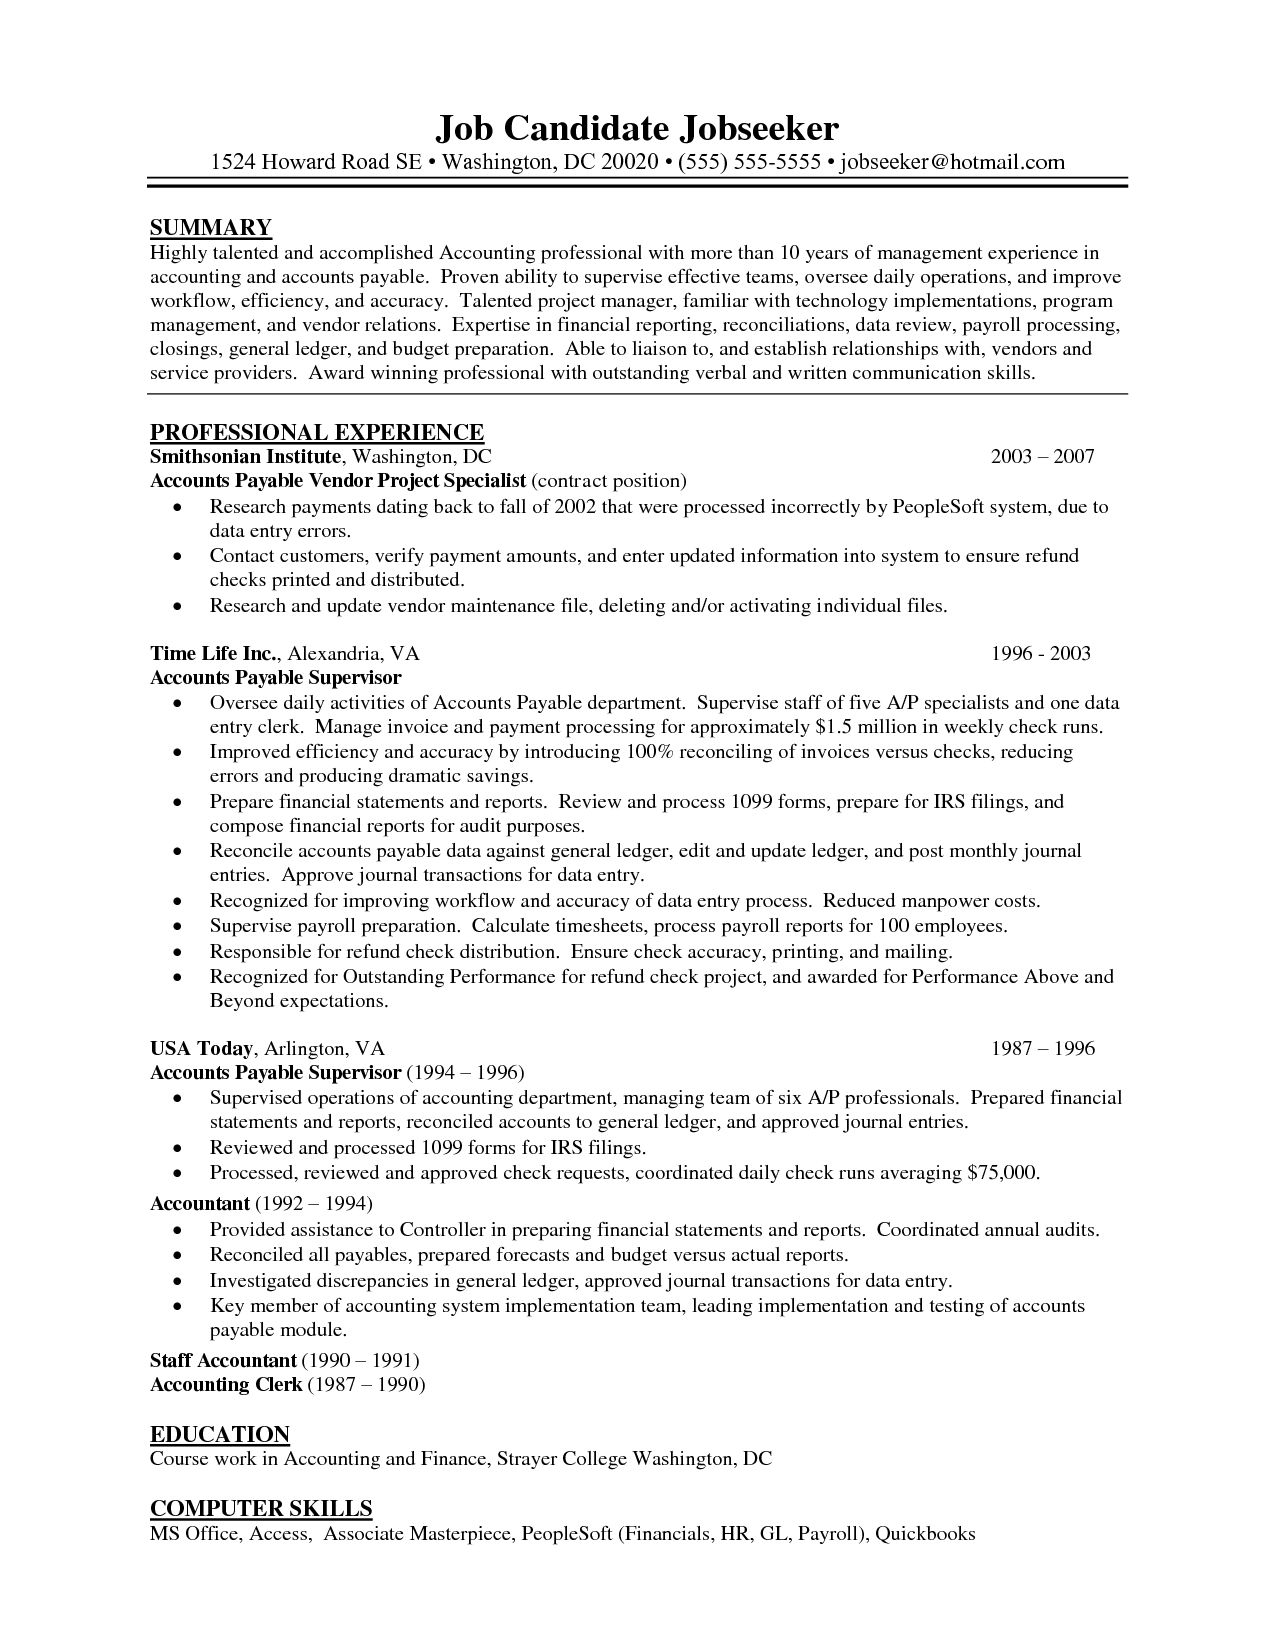 Accounts Payable Resume Samples New Resume Examples Accounts Payable  Pinterest  Resume Examples